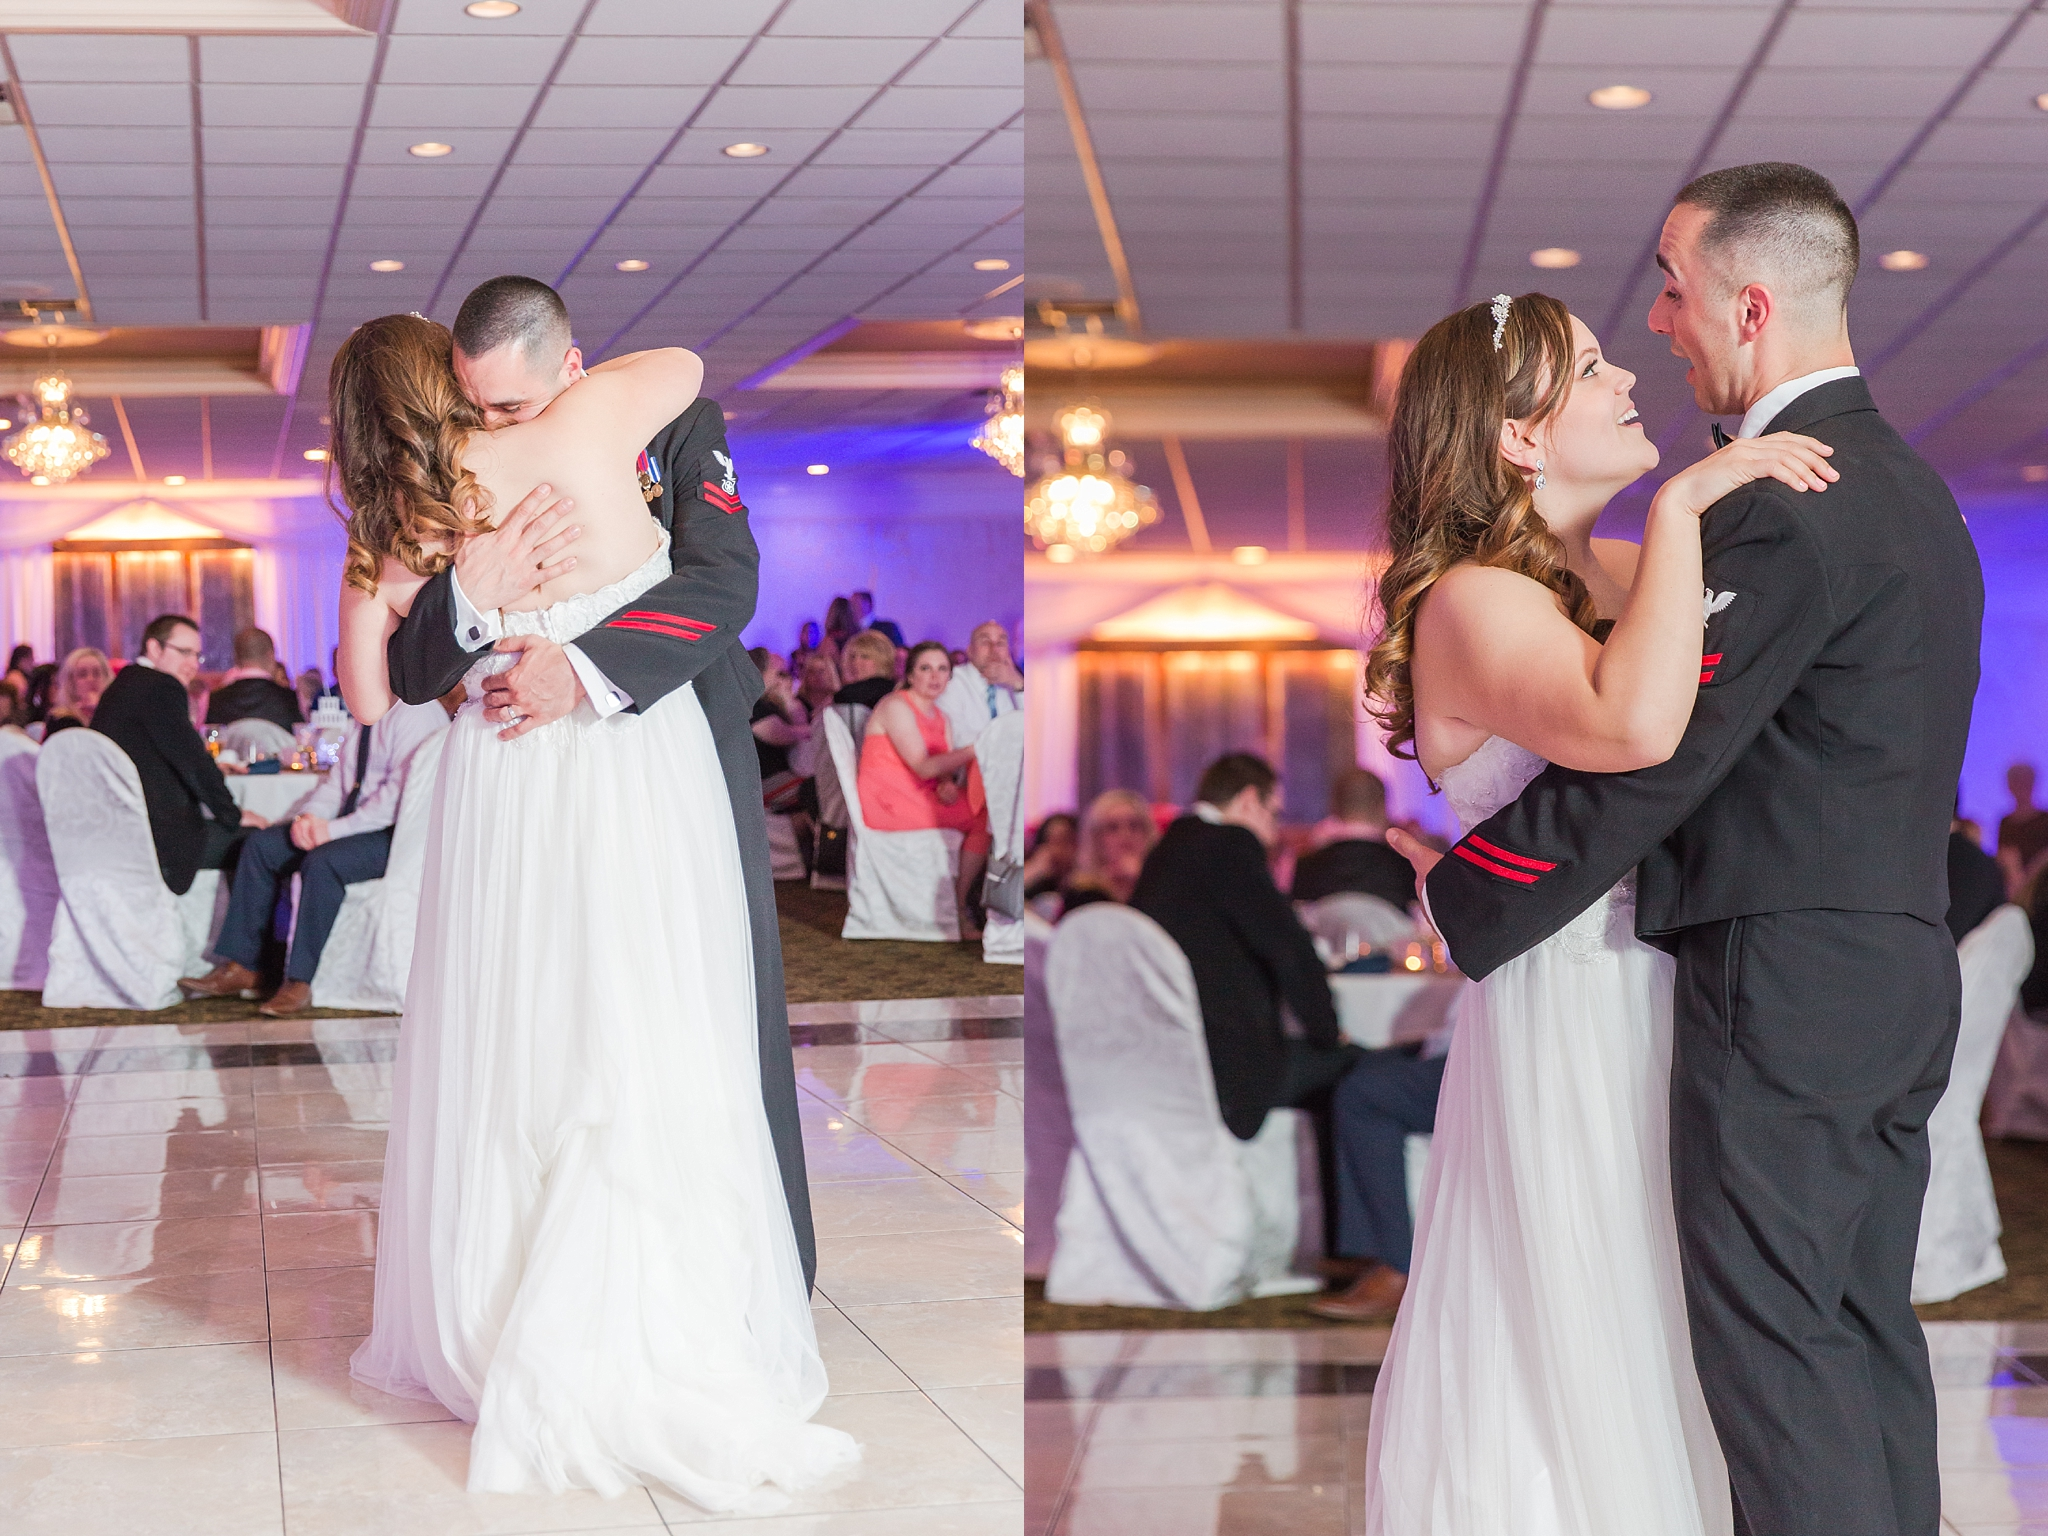 romantic-artful-candid-wedding-photos-in-st-clair-shores-at-the-white-house-wedding-chapel-by-courtney-carolyn-photography_0077.jpg